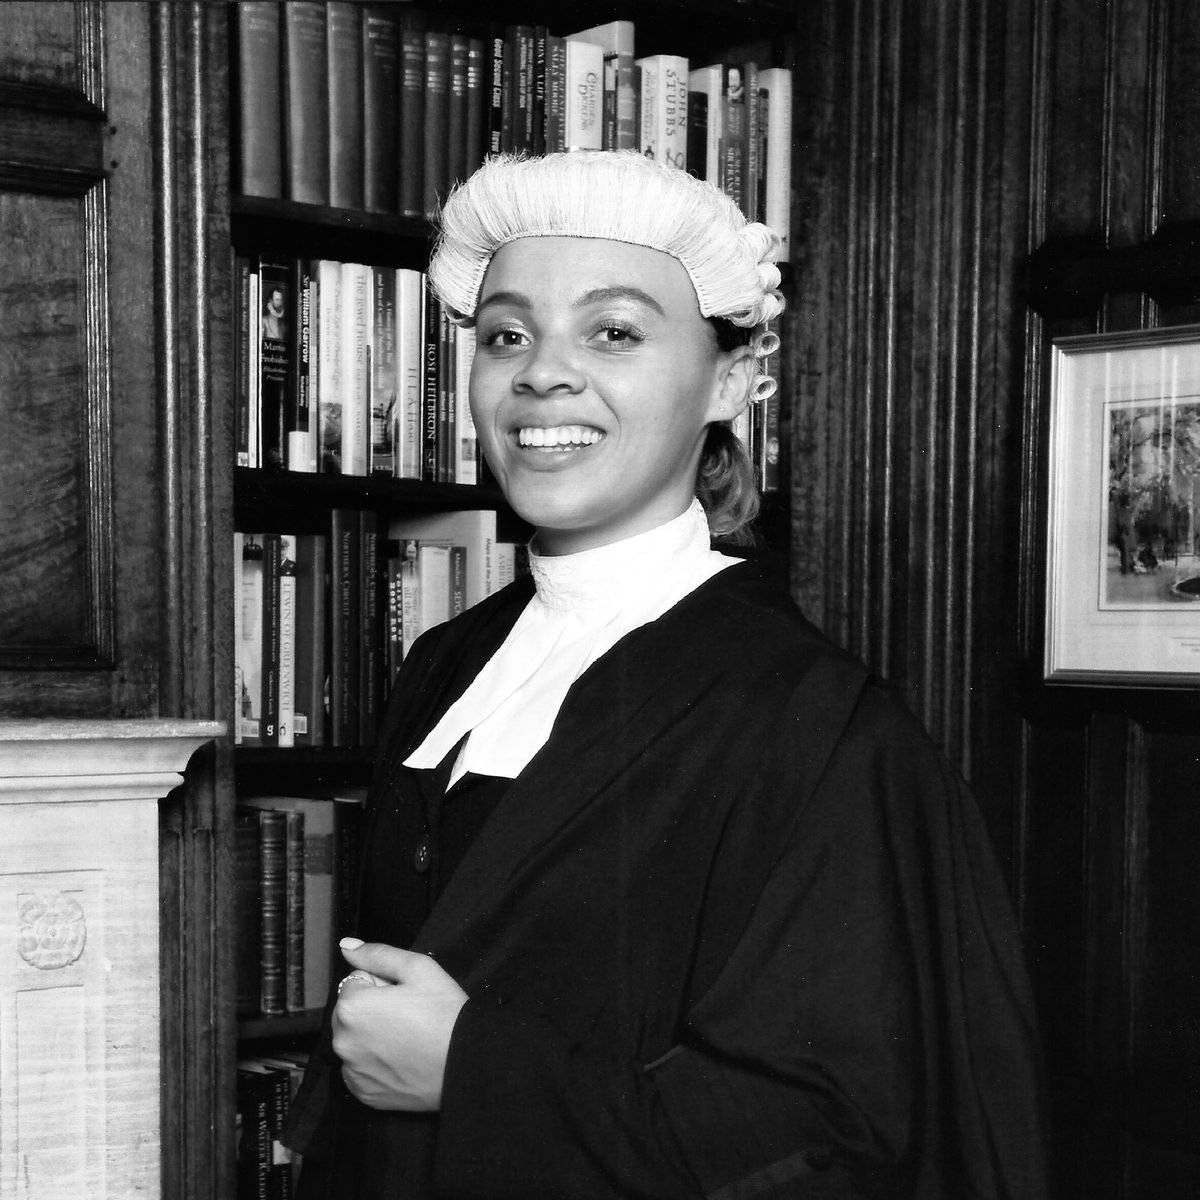 In just 3 months I'll be defending and prosecuting in the Courts of England and Wales. I'm 24. I'm mixed-race. I'm from Essex. I'm not posh. I worked hard and NEVER listened when people said the Bar wasn't for people like me. THIS is what a barrister looks like. https://t.co/f5CHh1nji5